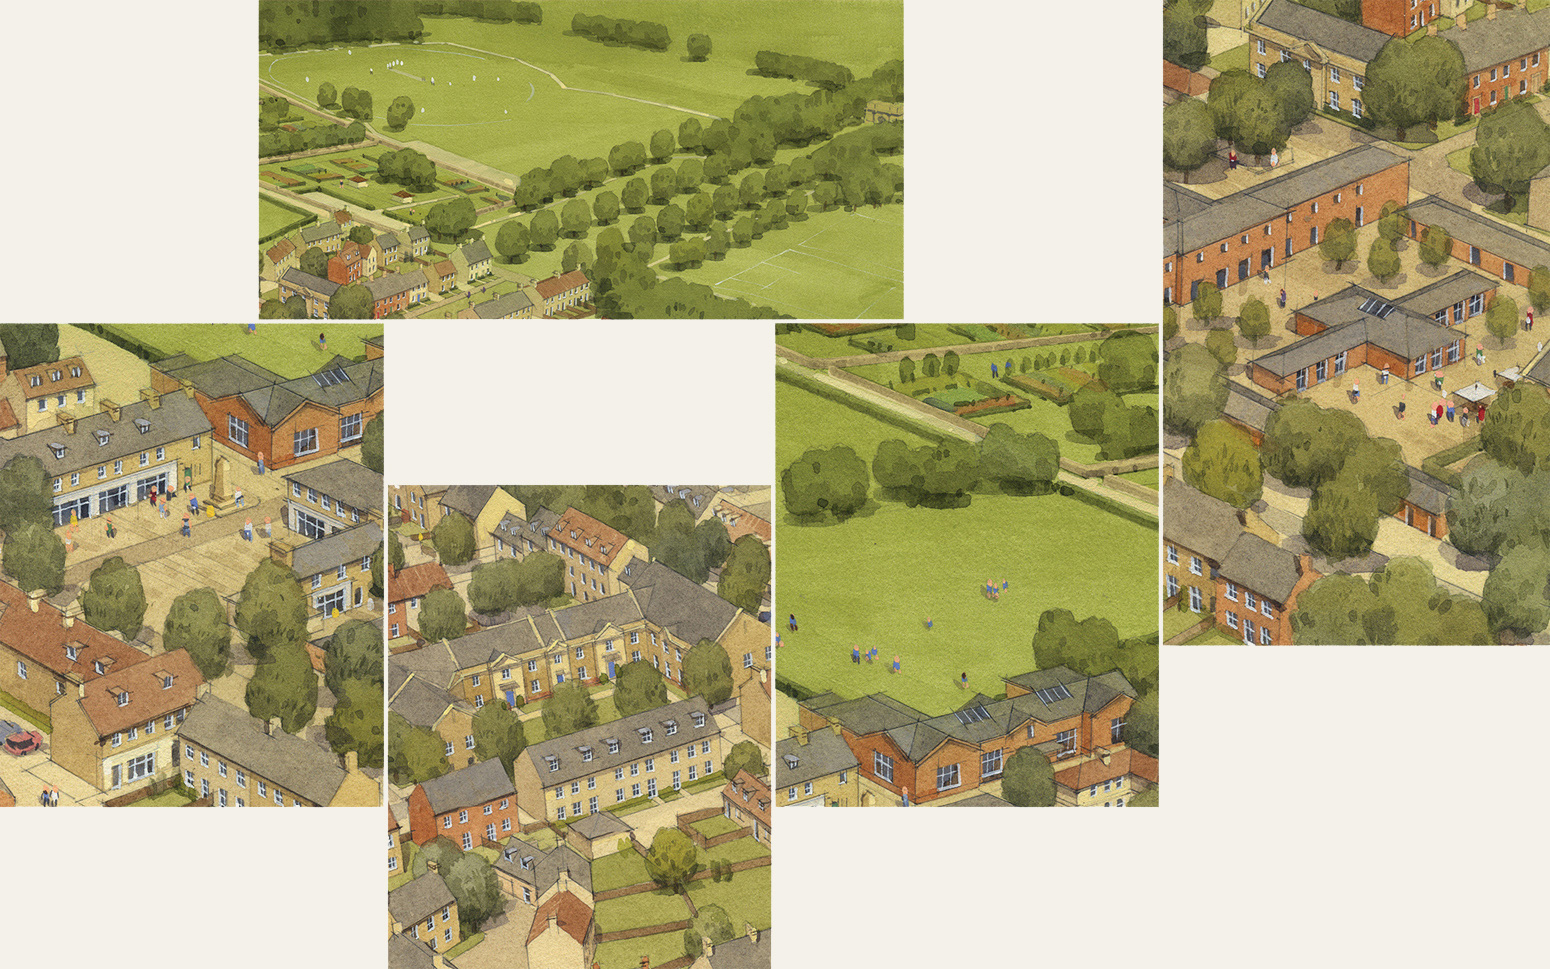 Collage of Parlington Village illustrations